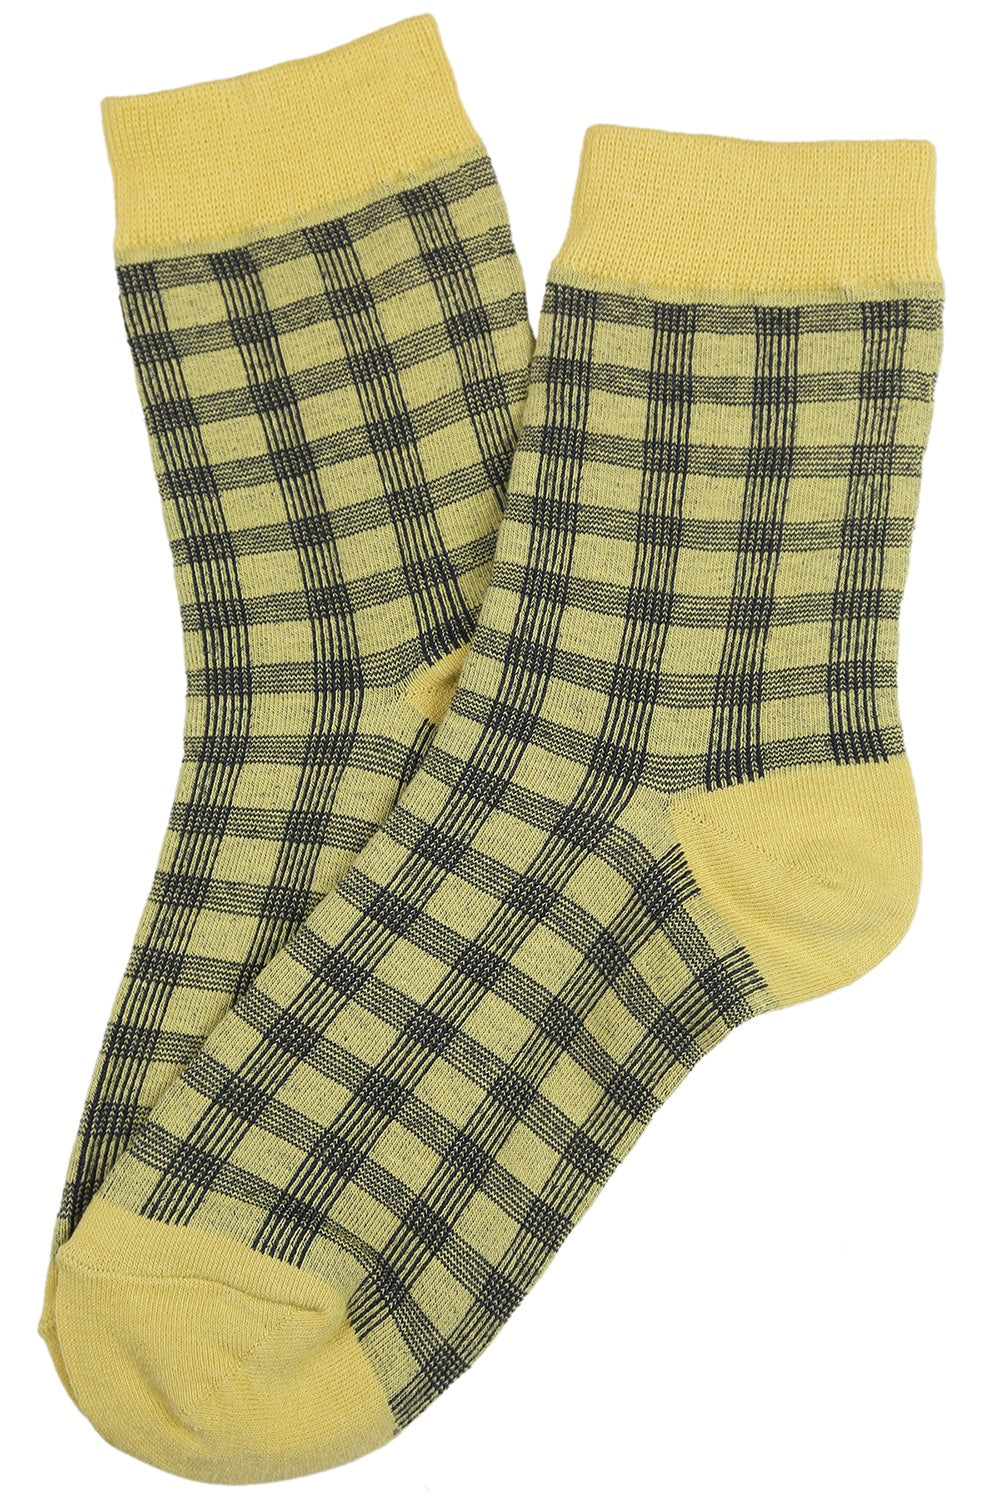 Dappled Cotton Socks Yellow